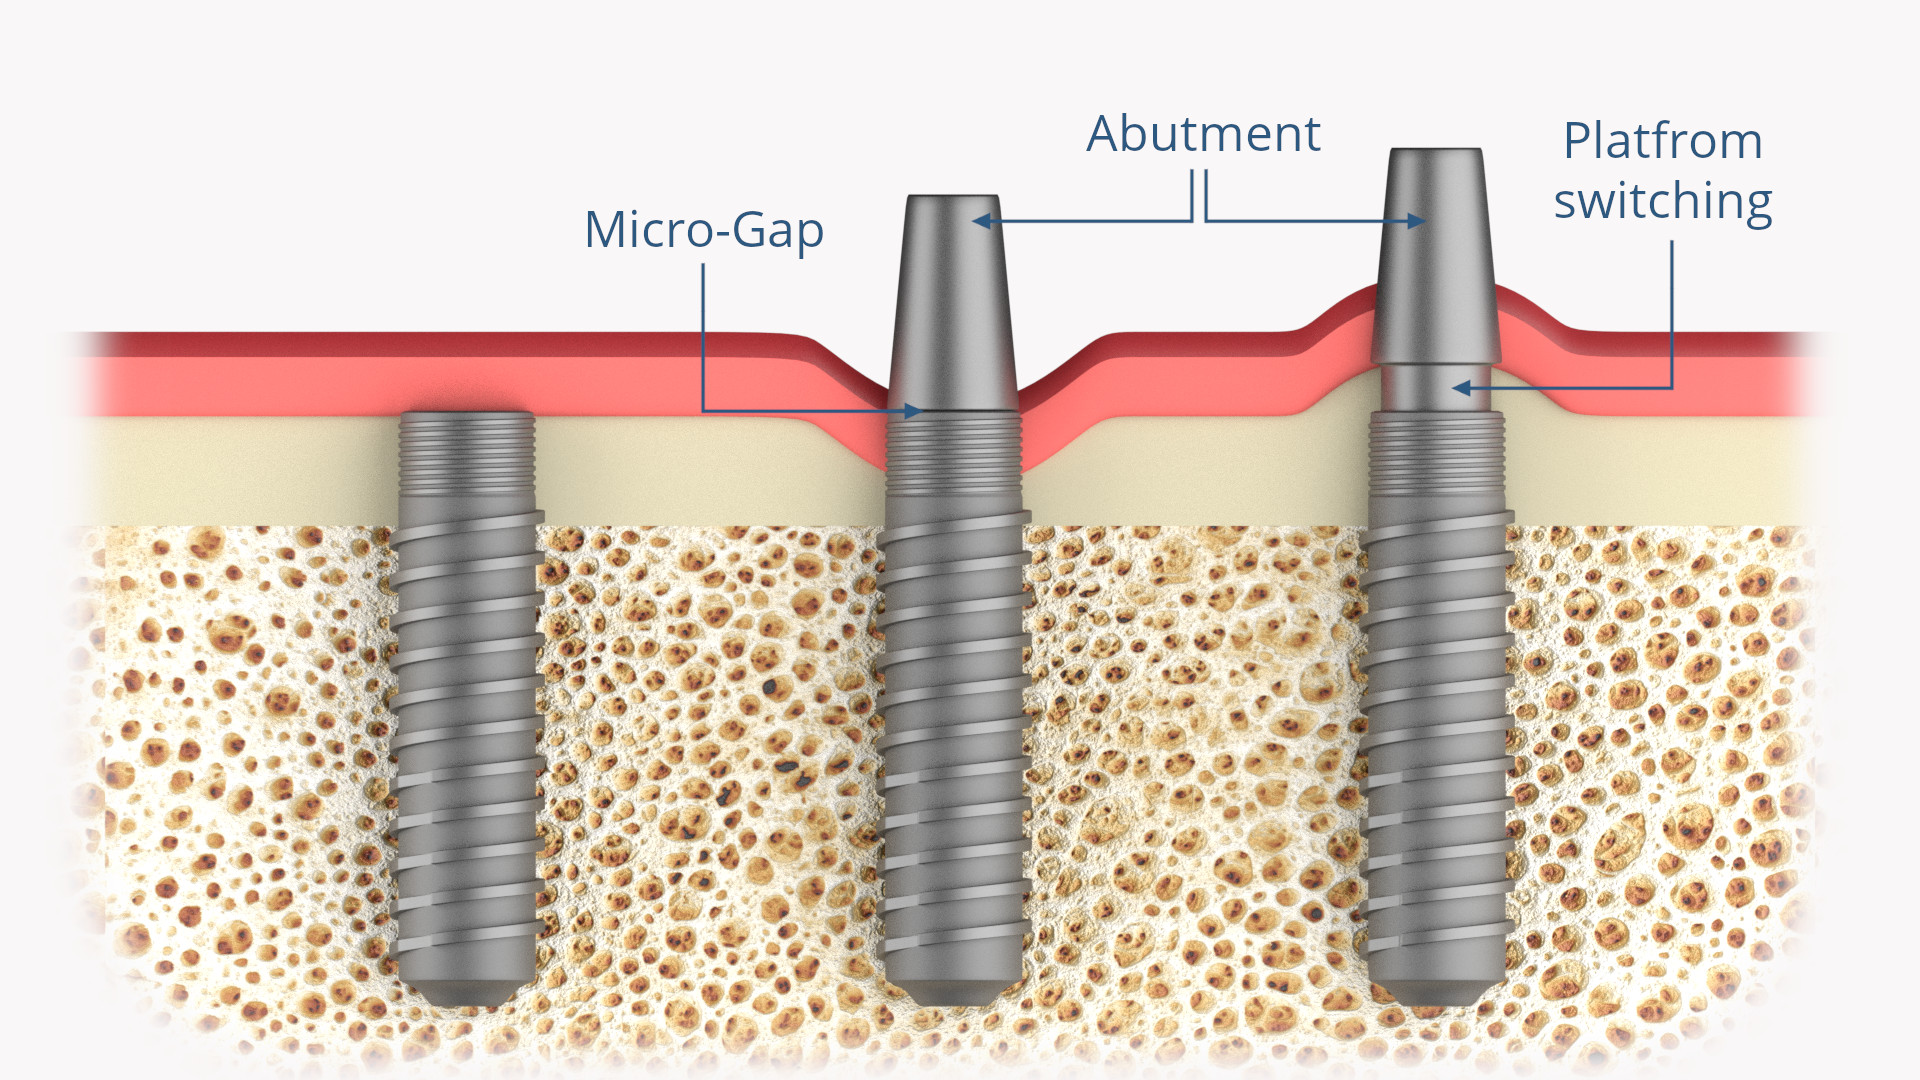 Zahnimplantat (Abutment, Micro-Gap, Plattform Switching)